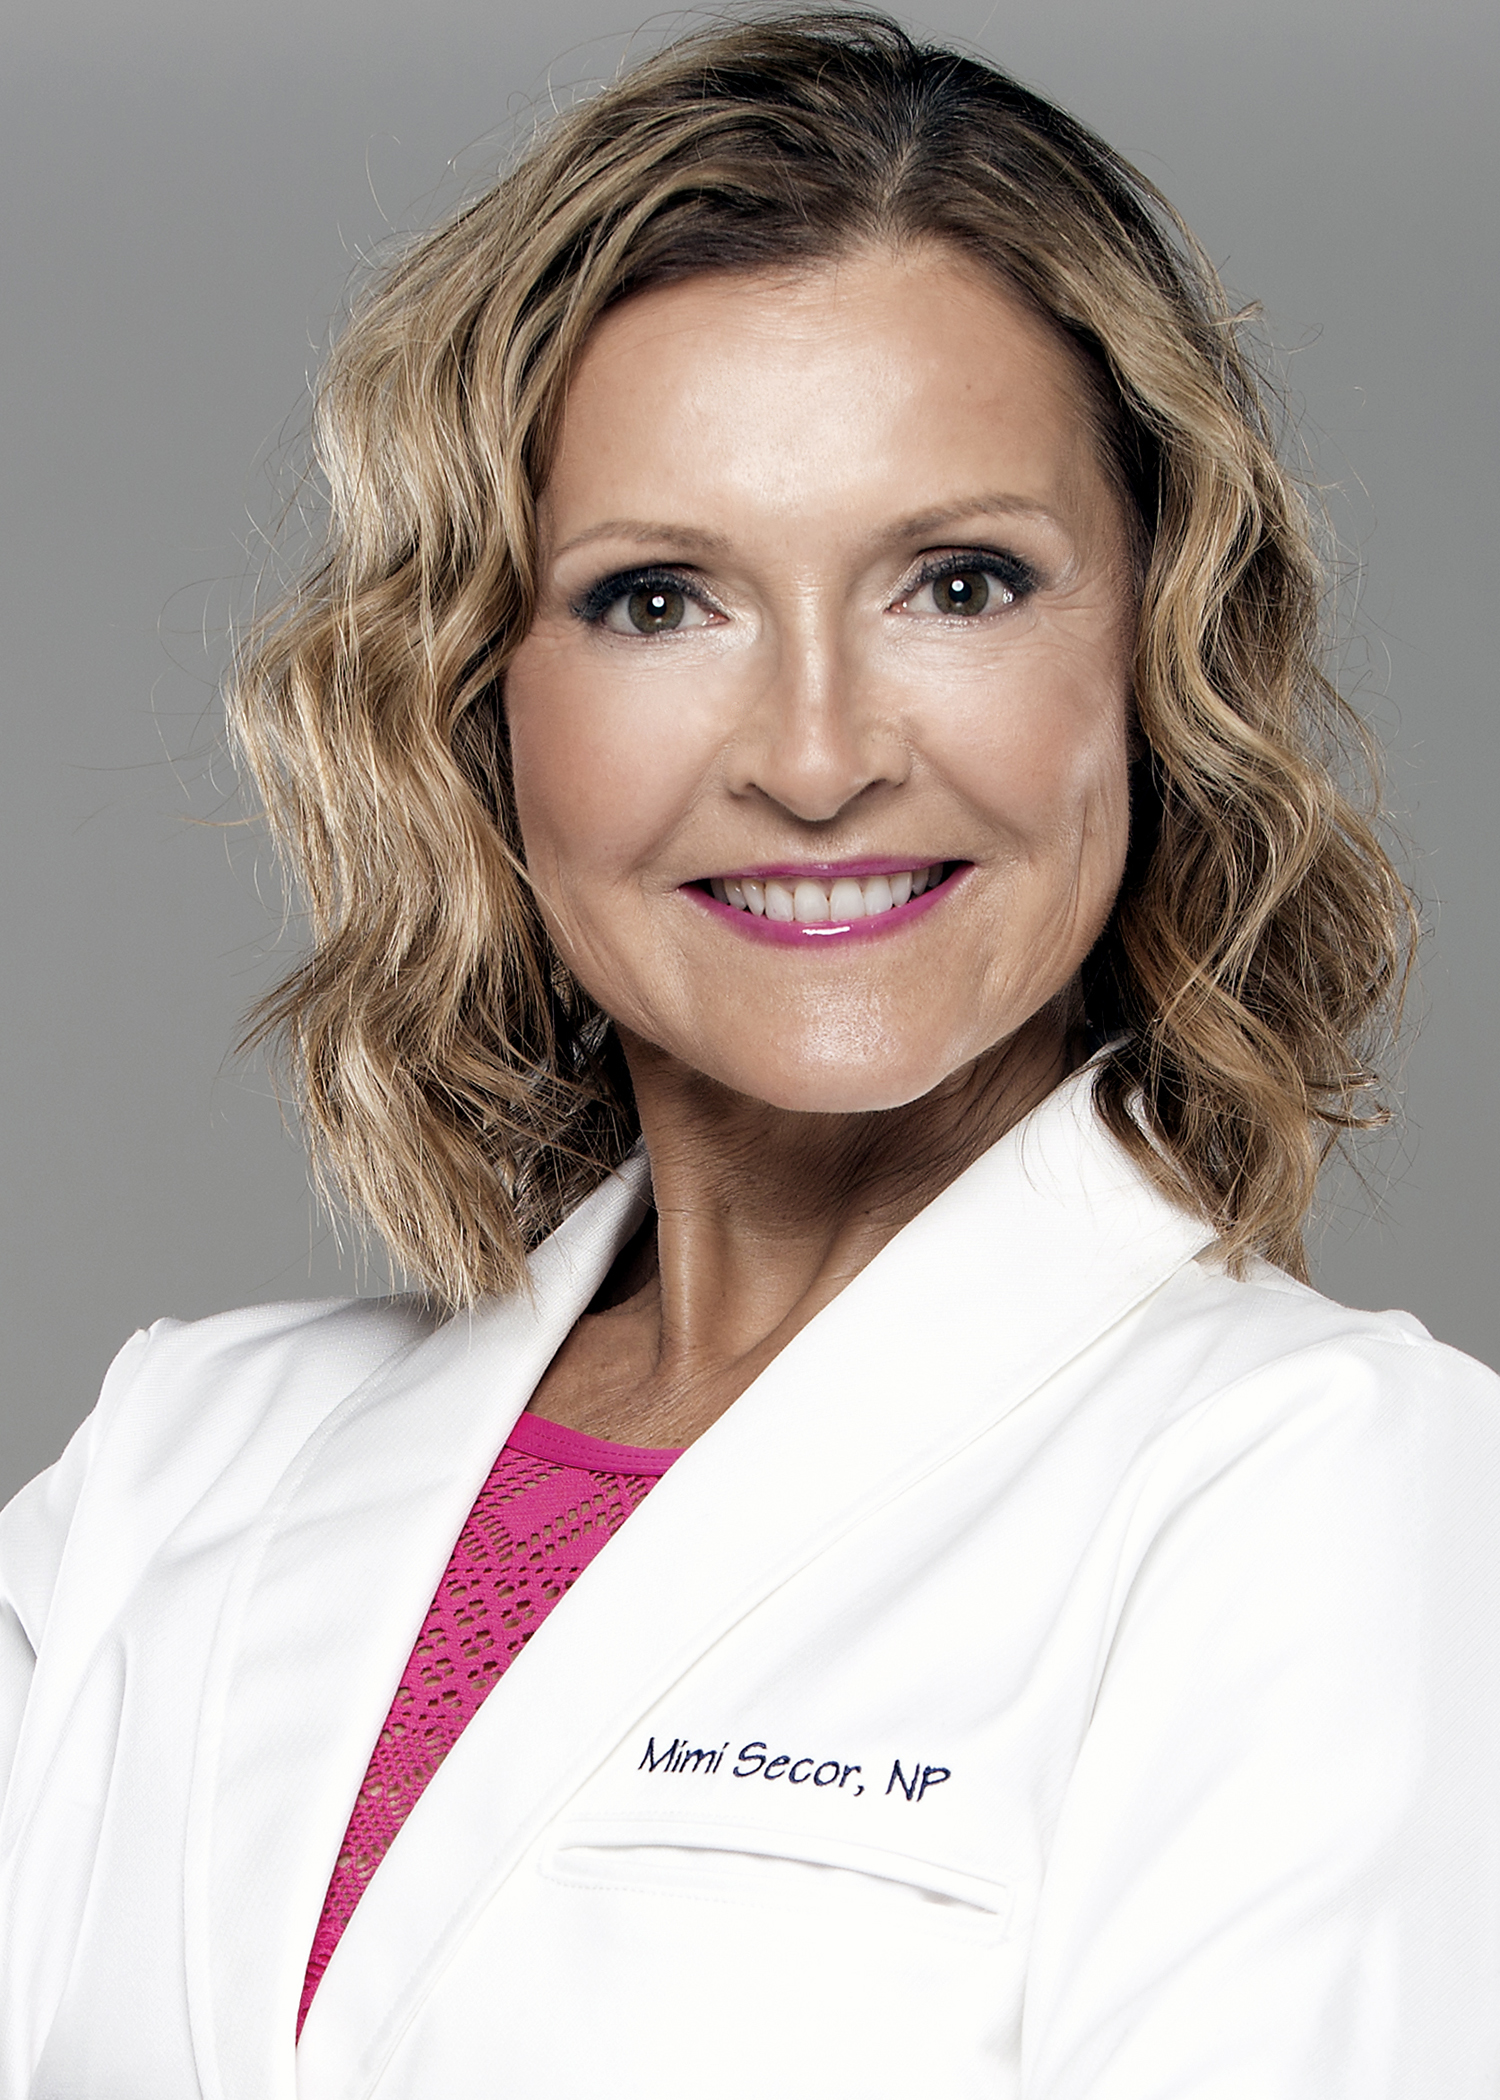 Headshot of Dr. Mimi Secor NP